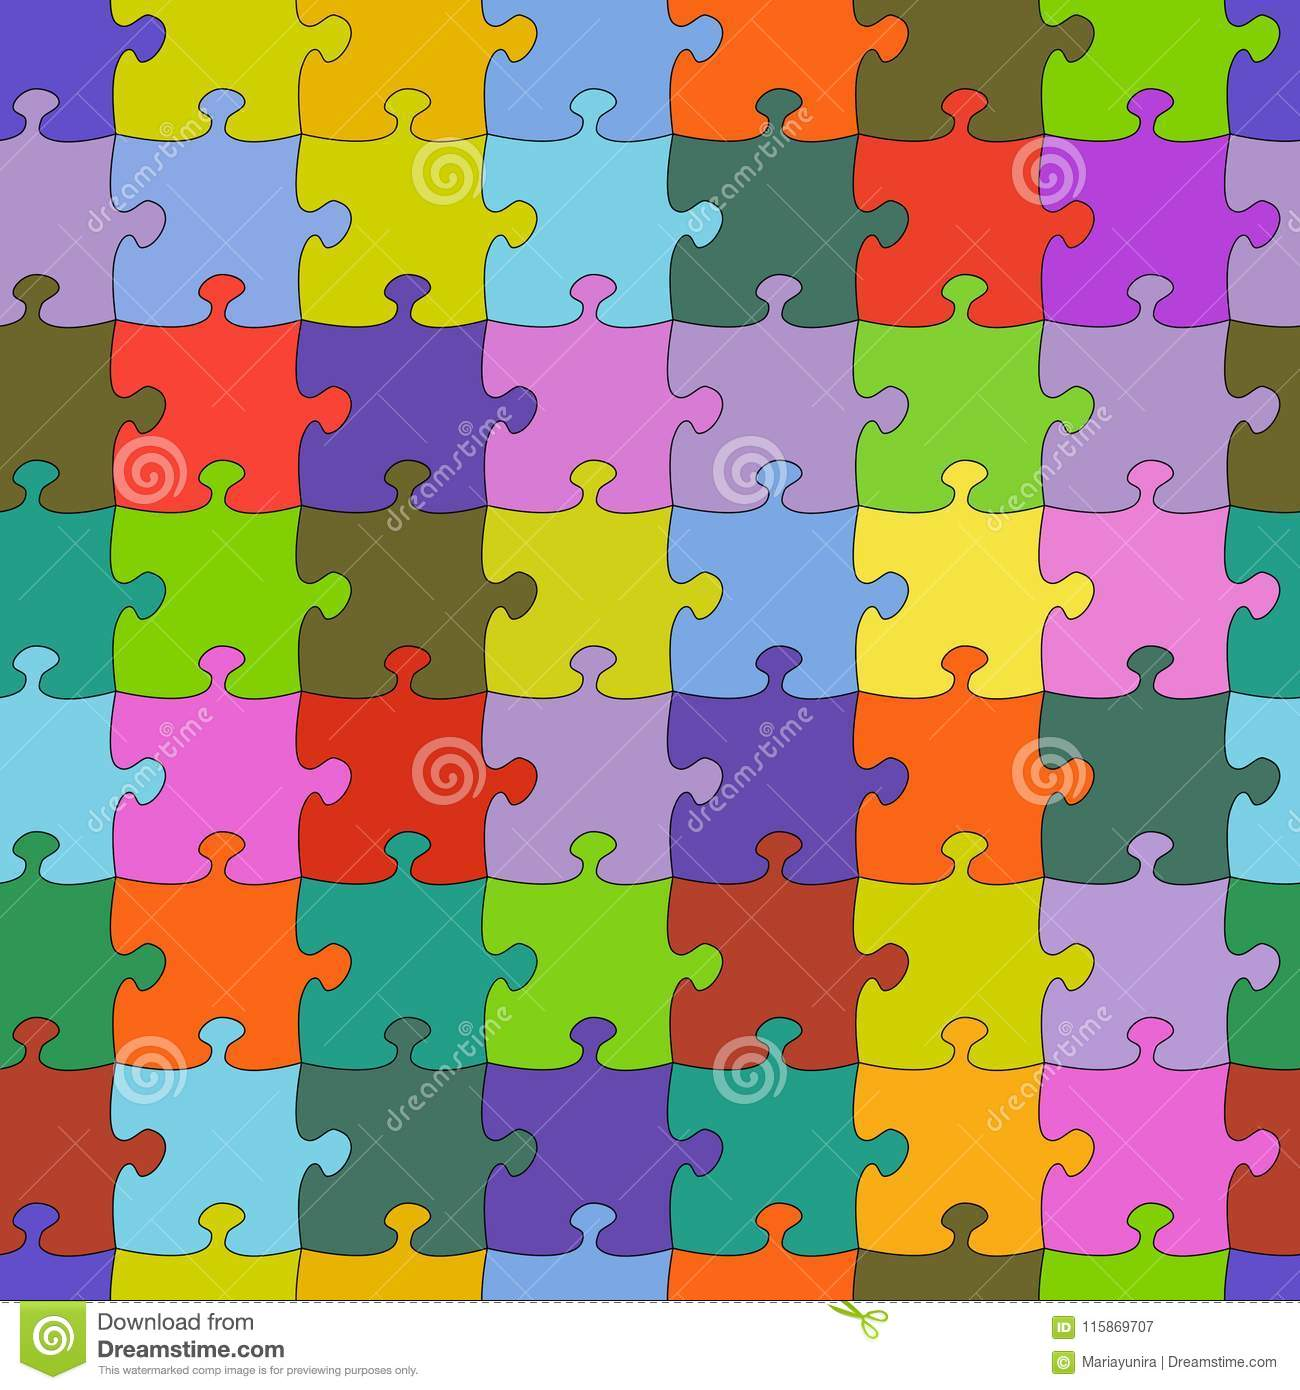 Puzzle Jigsaw Random Colorful Seamless Vector Background